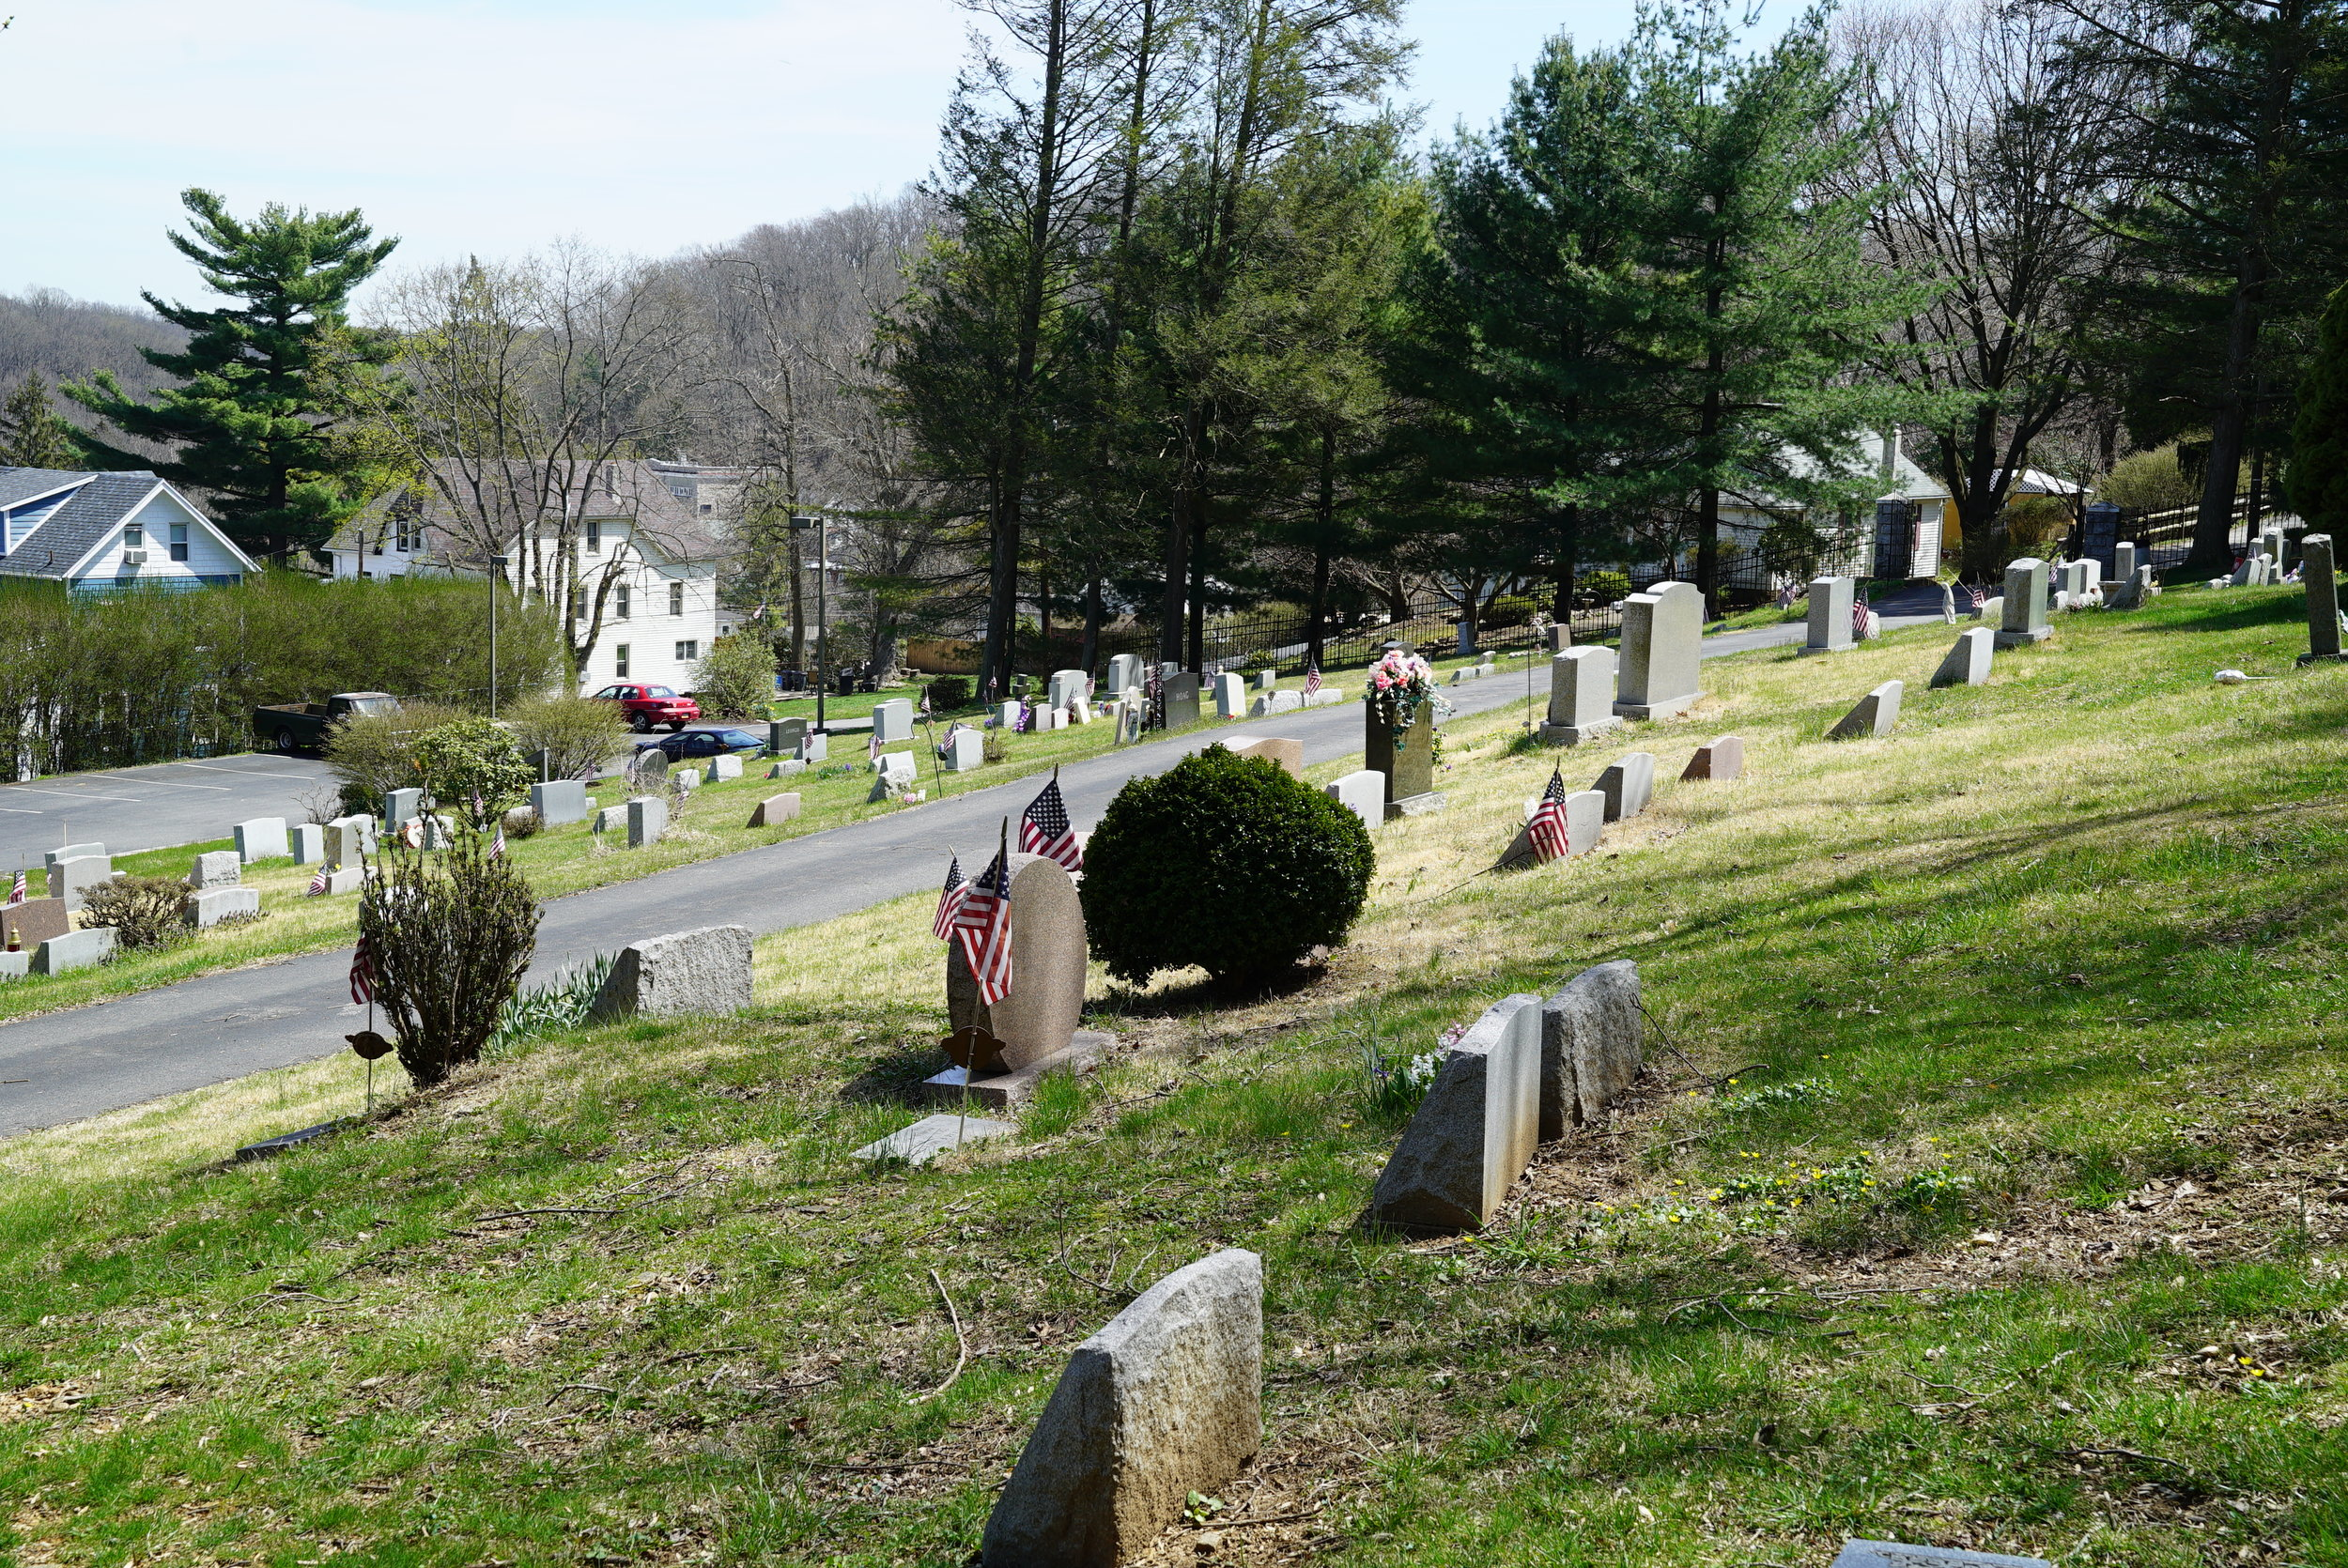 The entire cemetery grounds is one big hill. Saint Francis De Sales Church Cemetery. Lenni, PA.